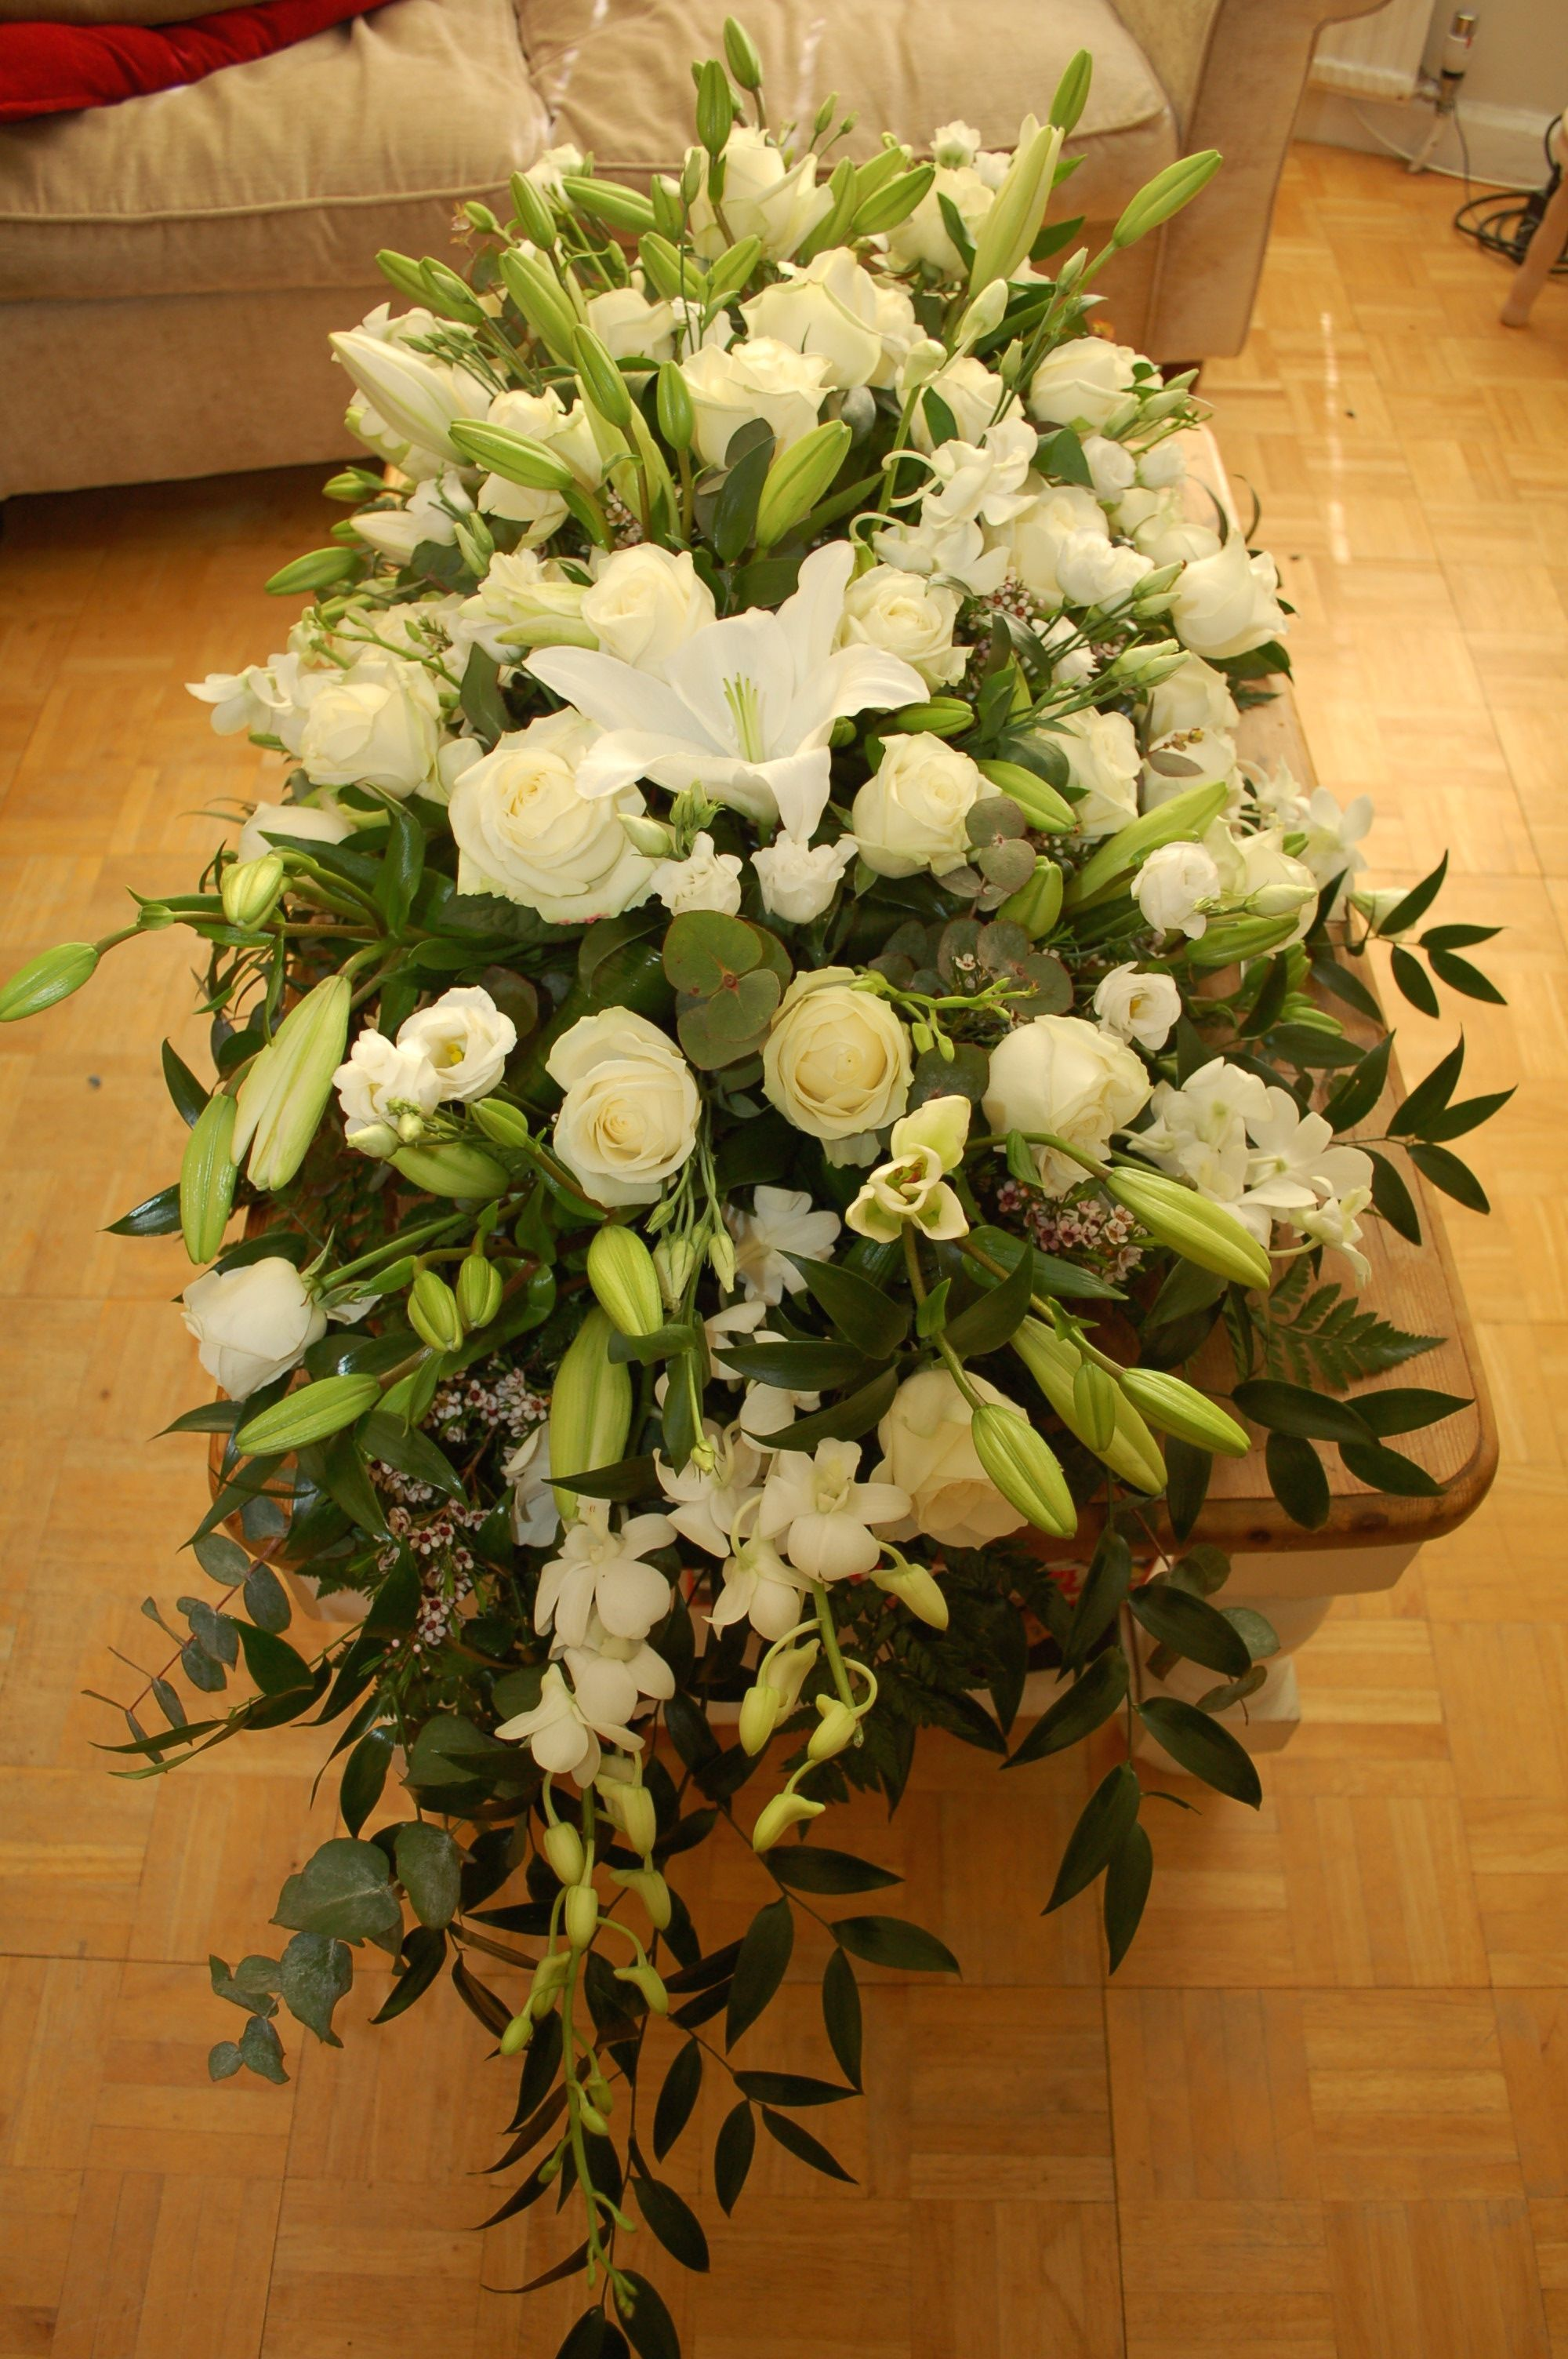 Casket spray lilies roses and orchids bishopandpolden floral casket spray lilies roses and orchids bishopandpolden izmirmasajfo